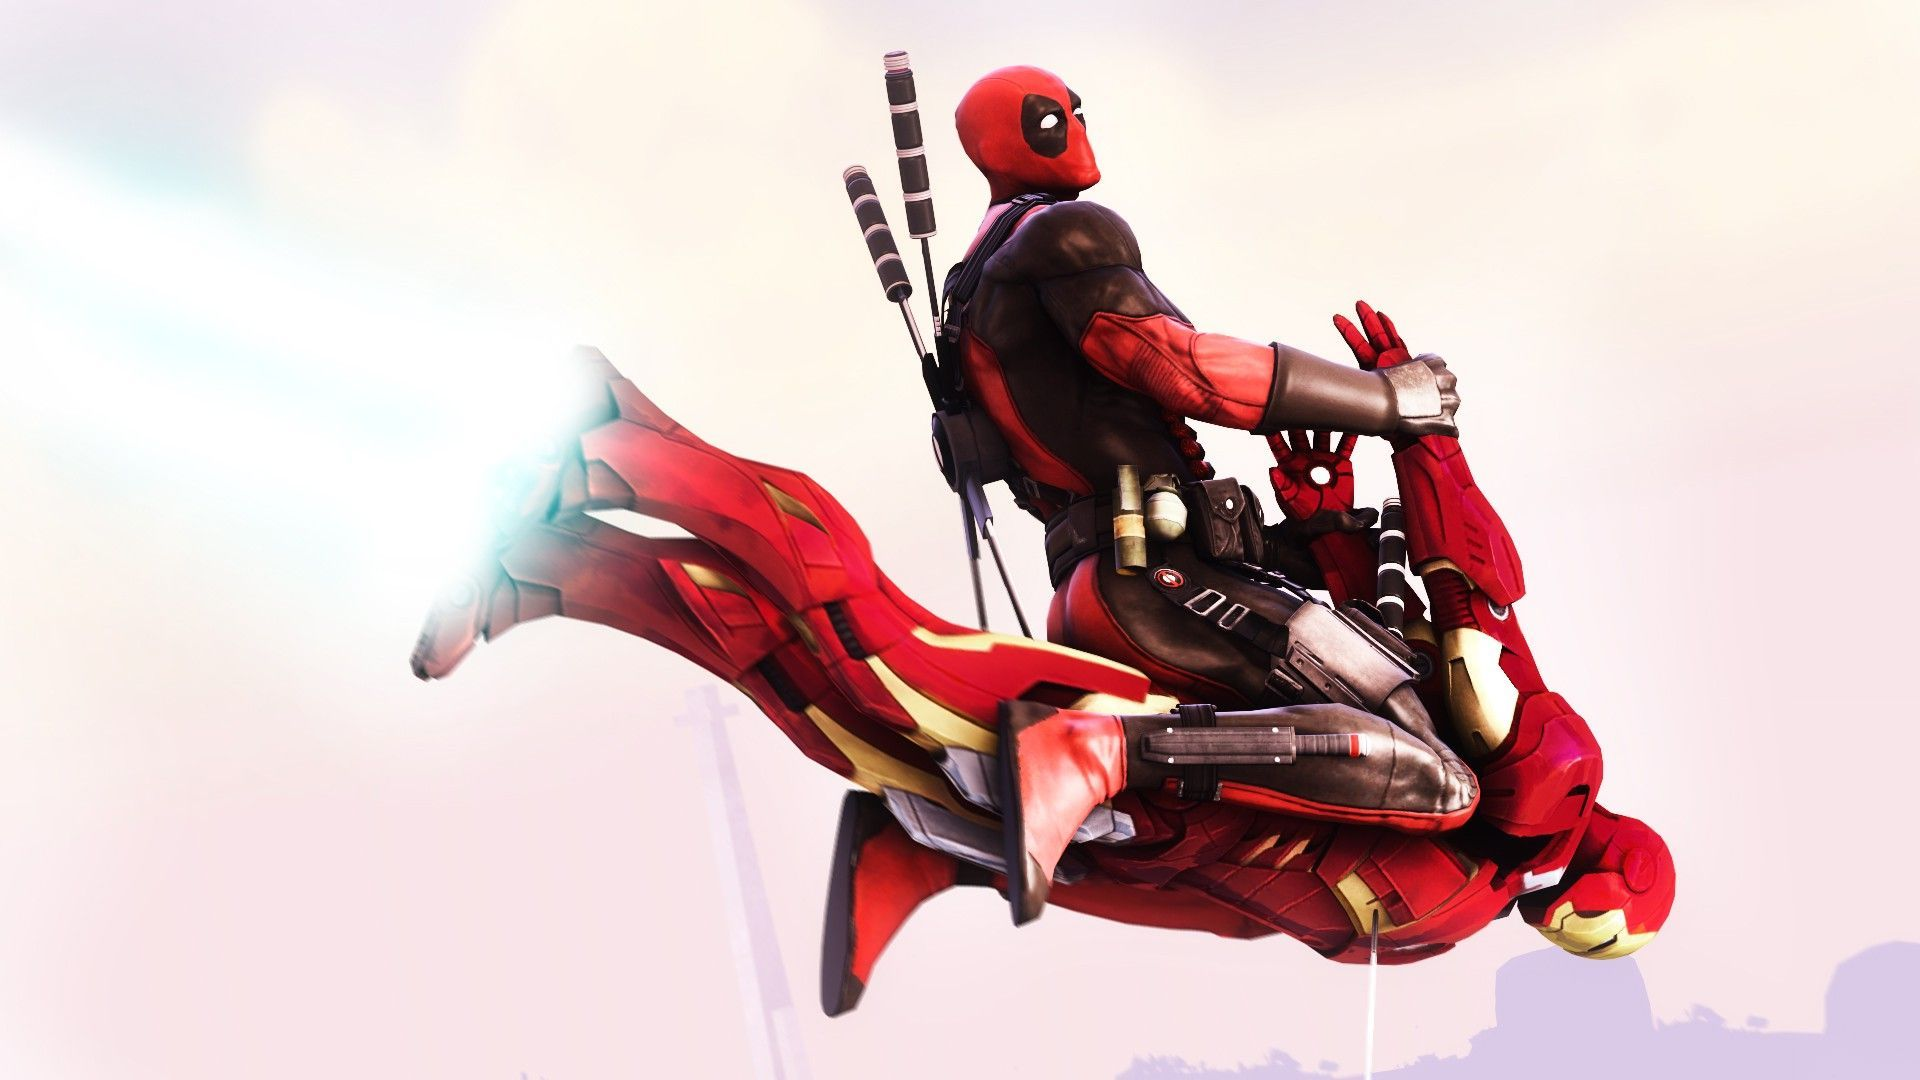 Spiderman And Deadpool Wallpapers Hd   Deadpool Funny Wallpapers